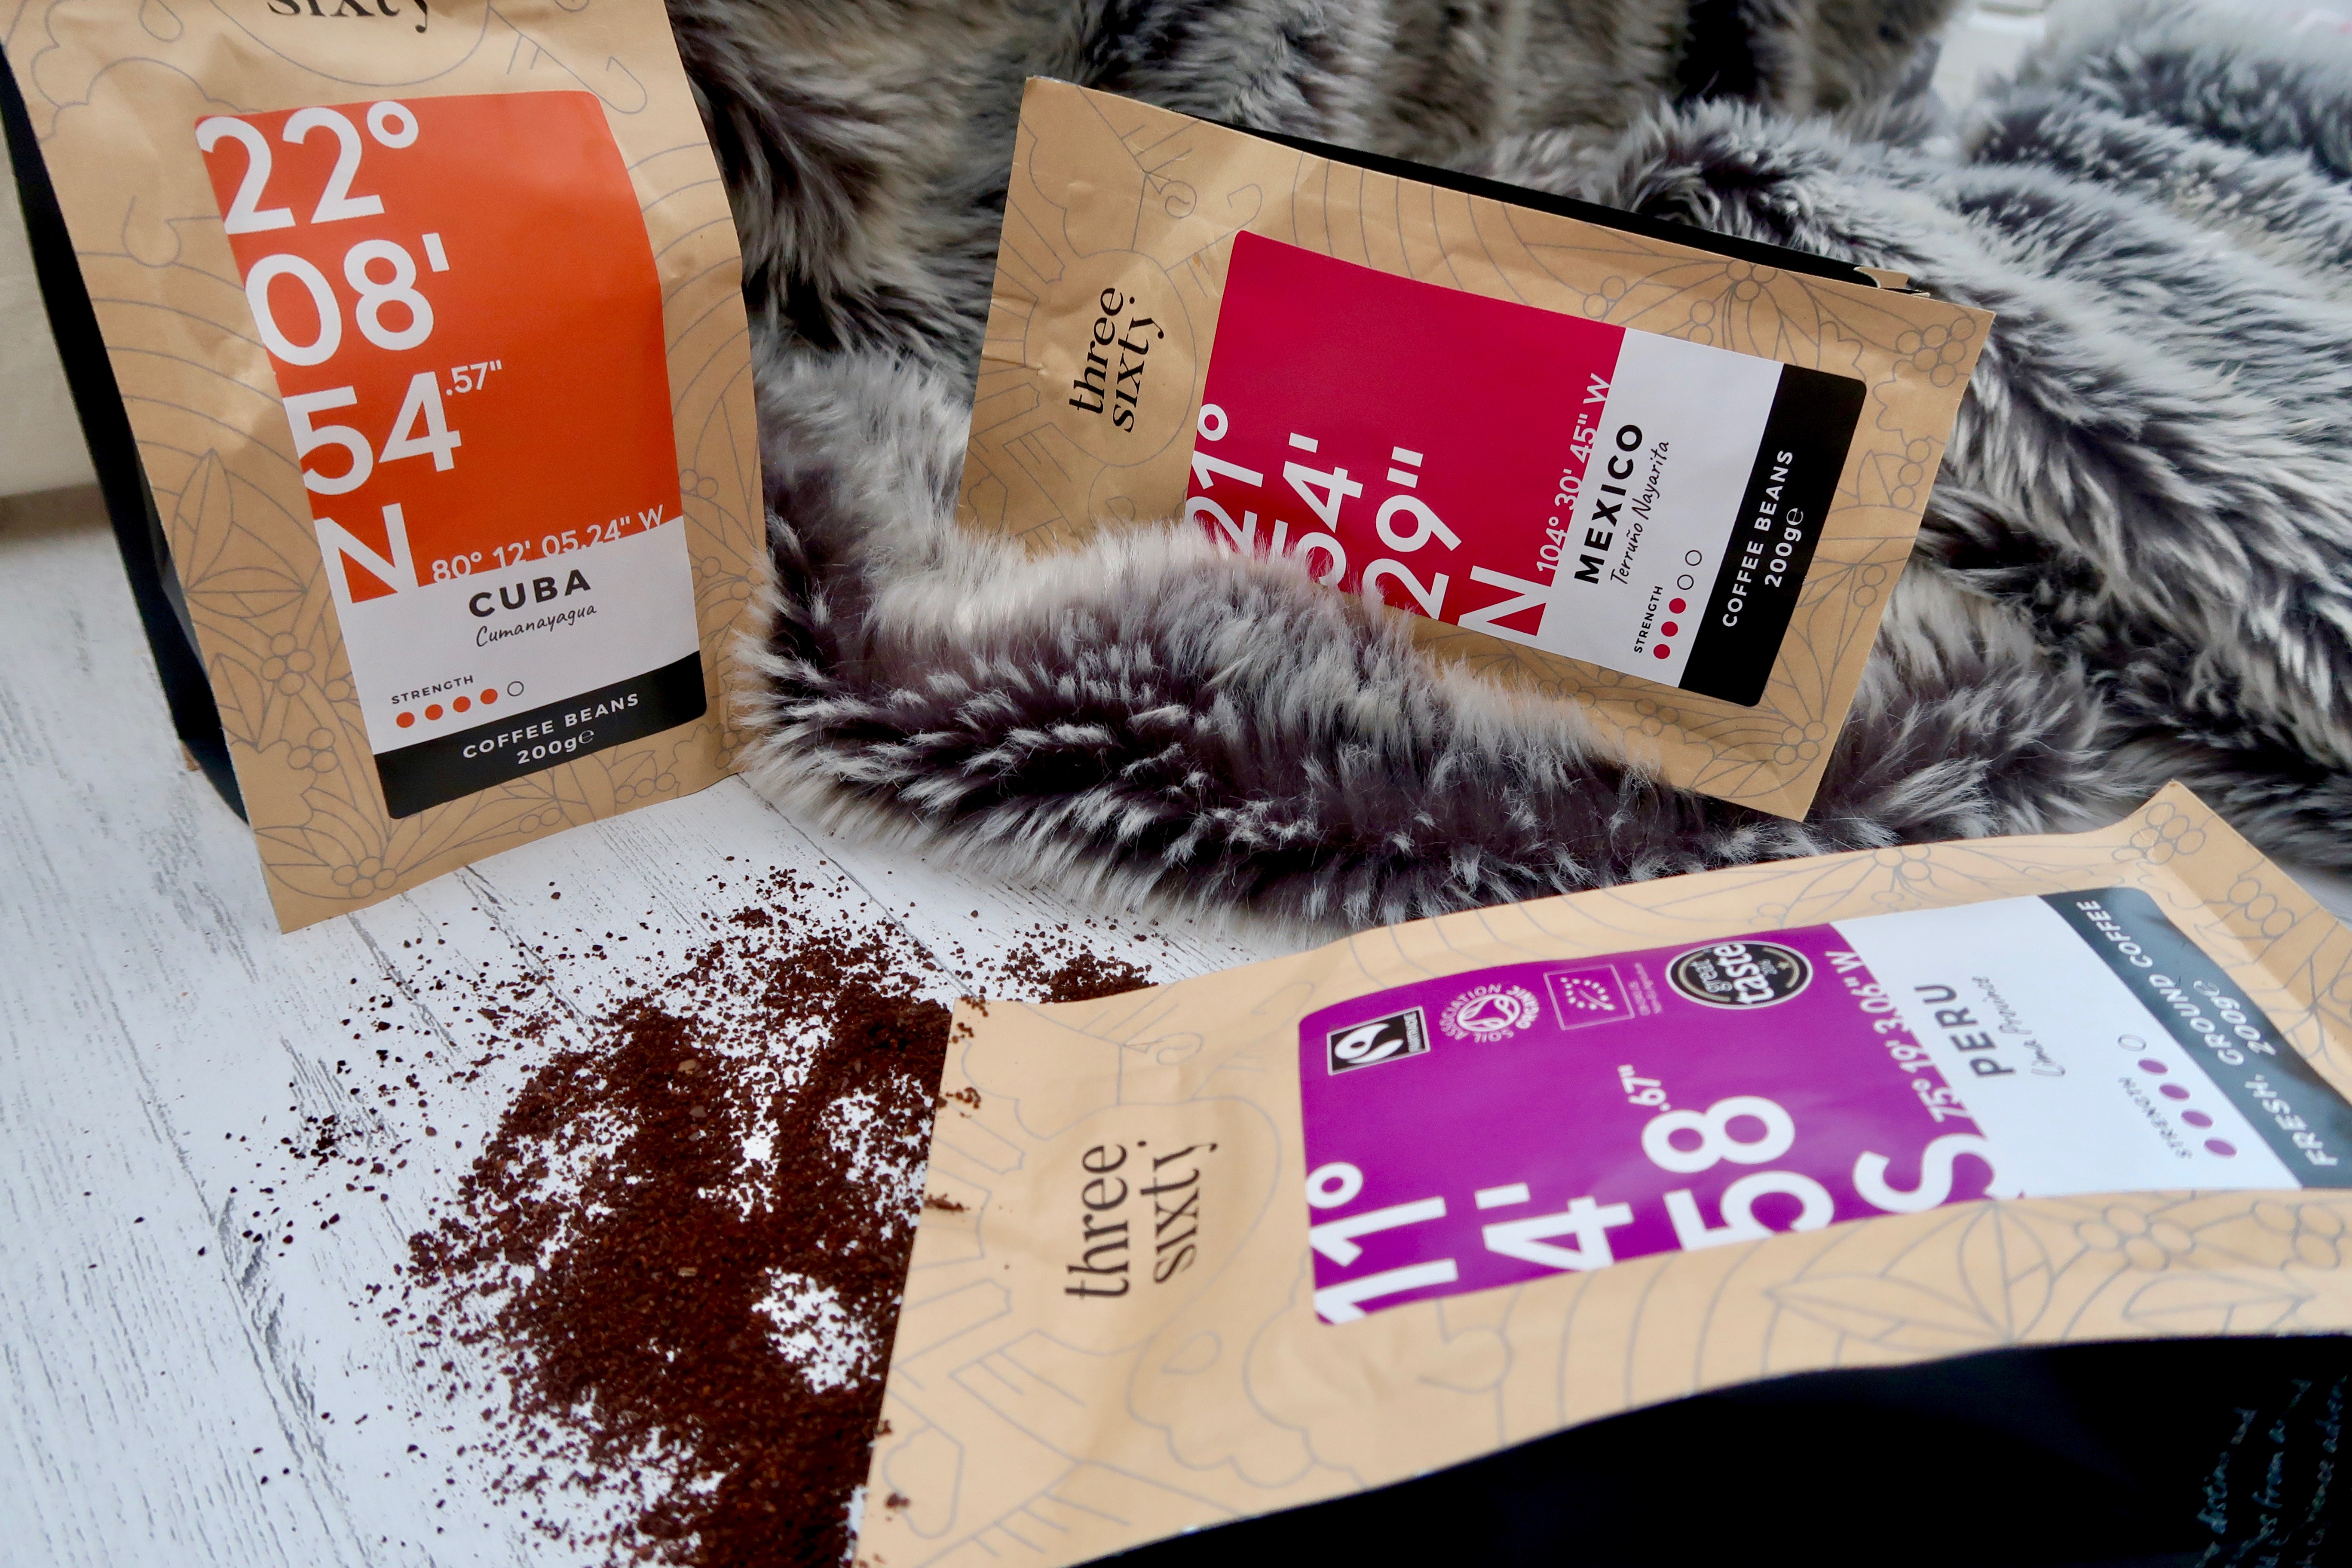 ThreeSixty° Coffee - Fair Trade and Organic Coffee from Peru, Cuba and Mexico | Ground coffee barista style review | Elle Blonde Luxury Lifestyle Destination Blog